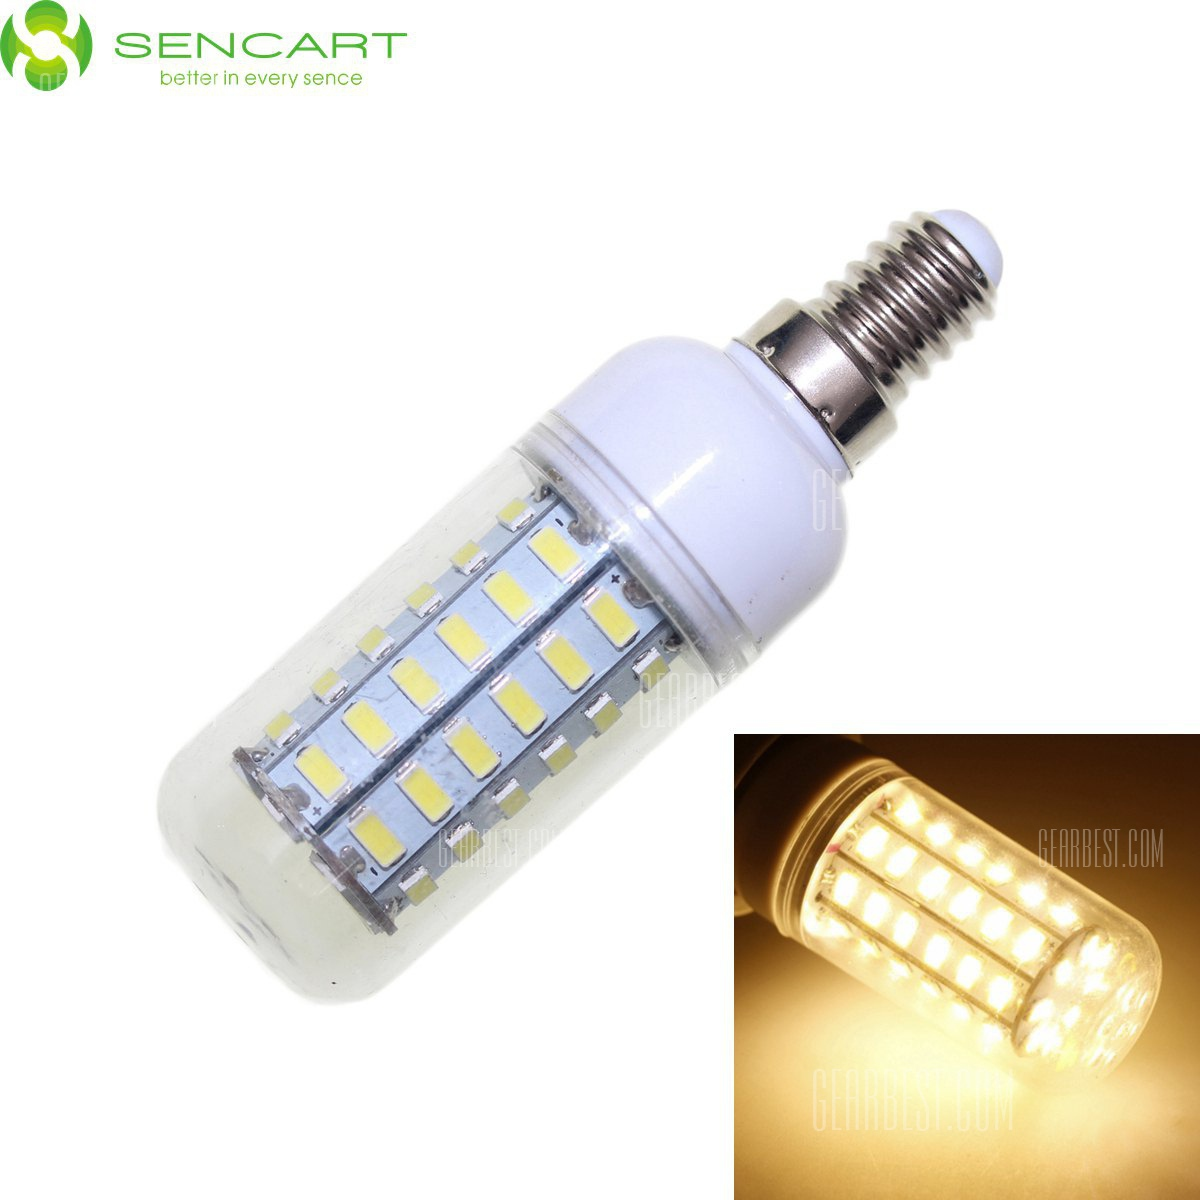 Sencart E14 12W - 5730 56 LED SMD suave regulable Bombilla de luz LED blanco 2200LM CA 110 - 240 V